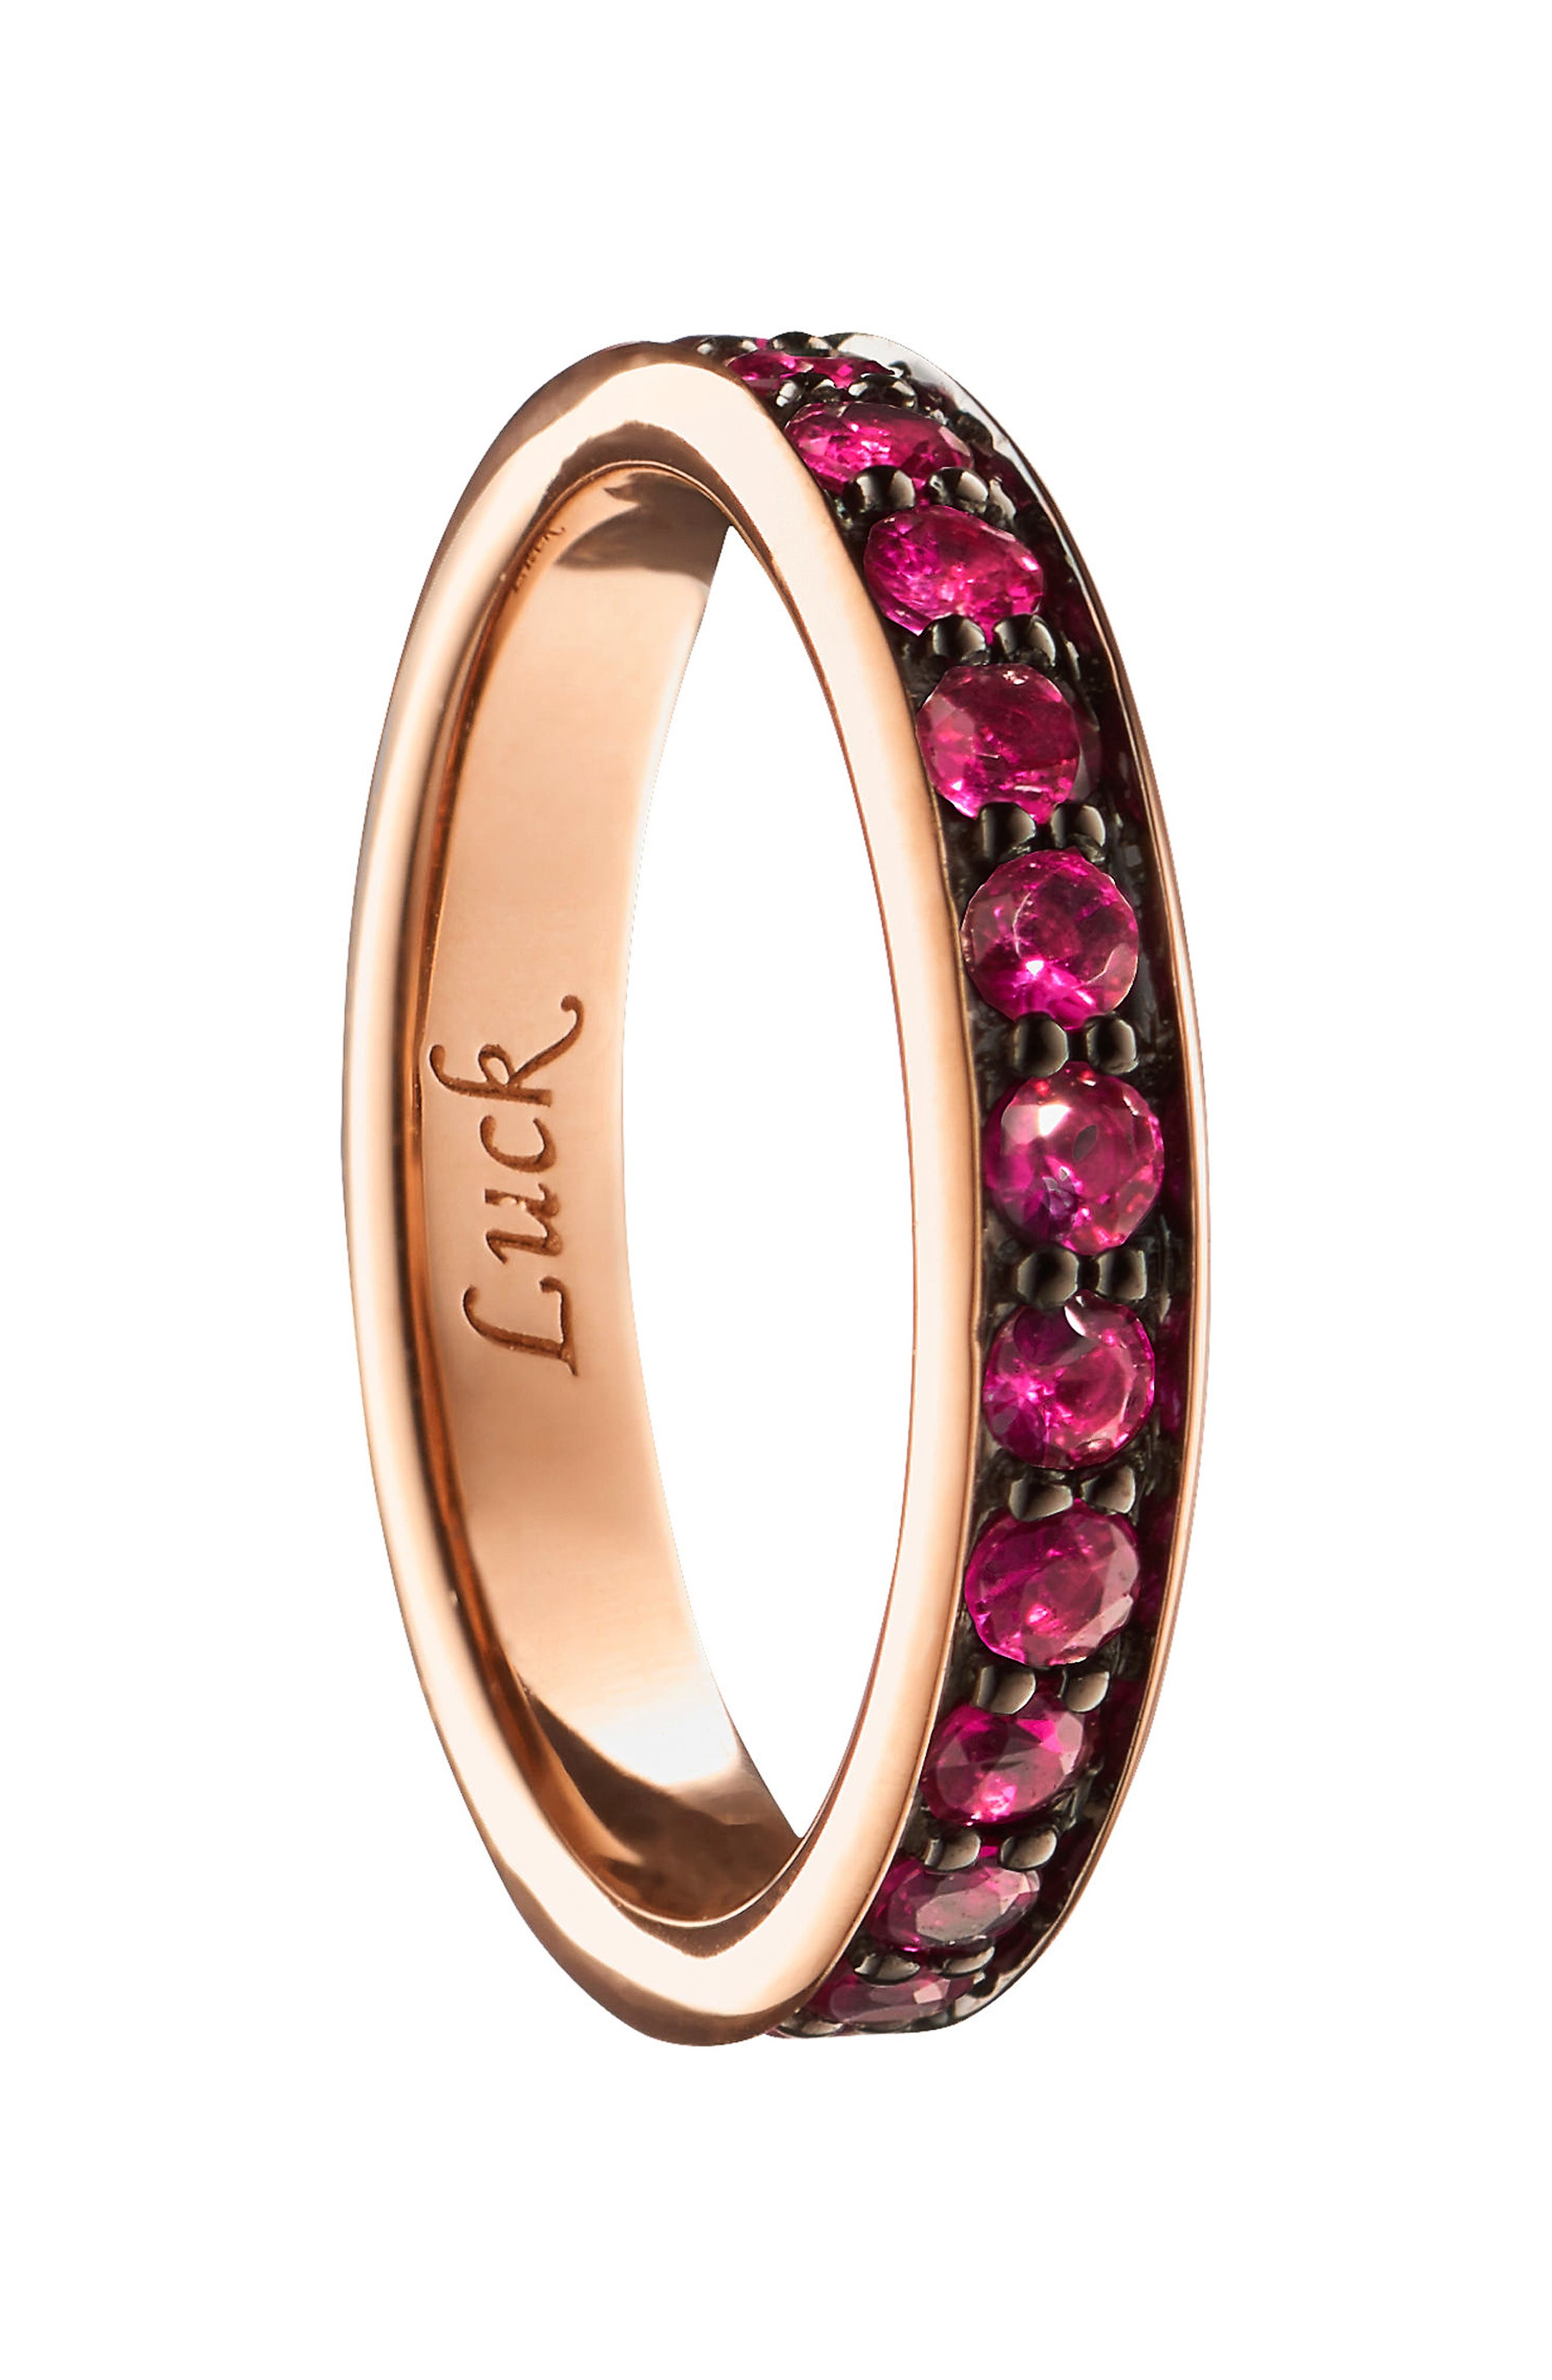 Luck Ruby Poesy Ring Charm,                         Main,                         color, 18K ROSE GOLD